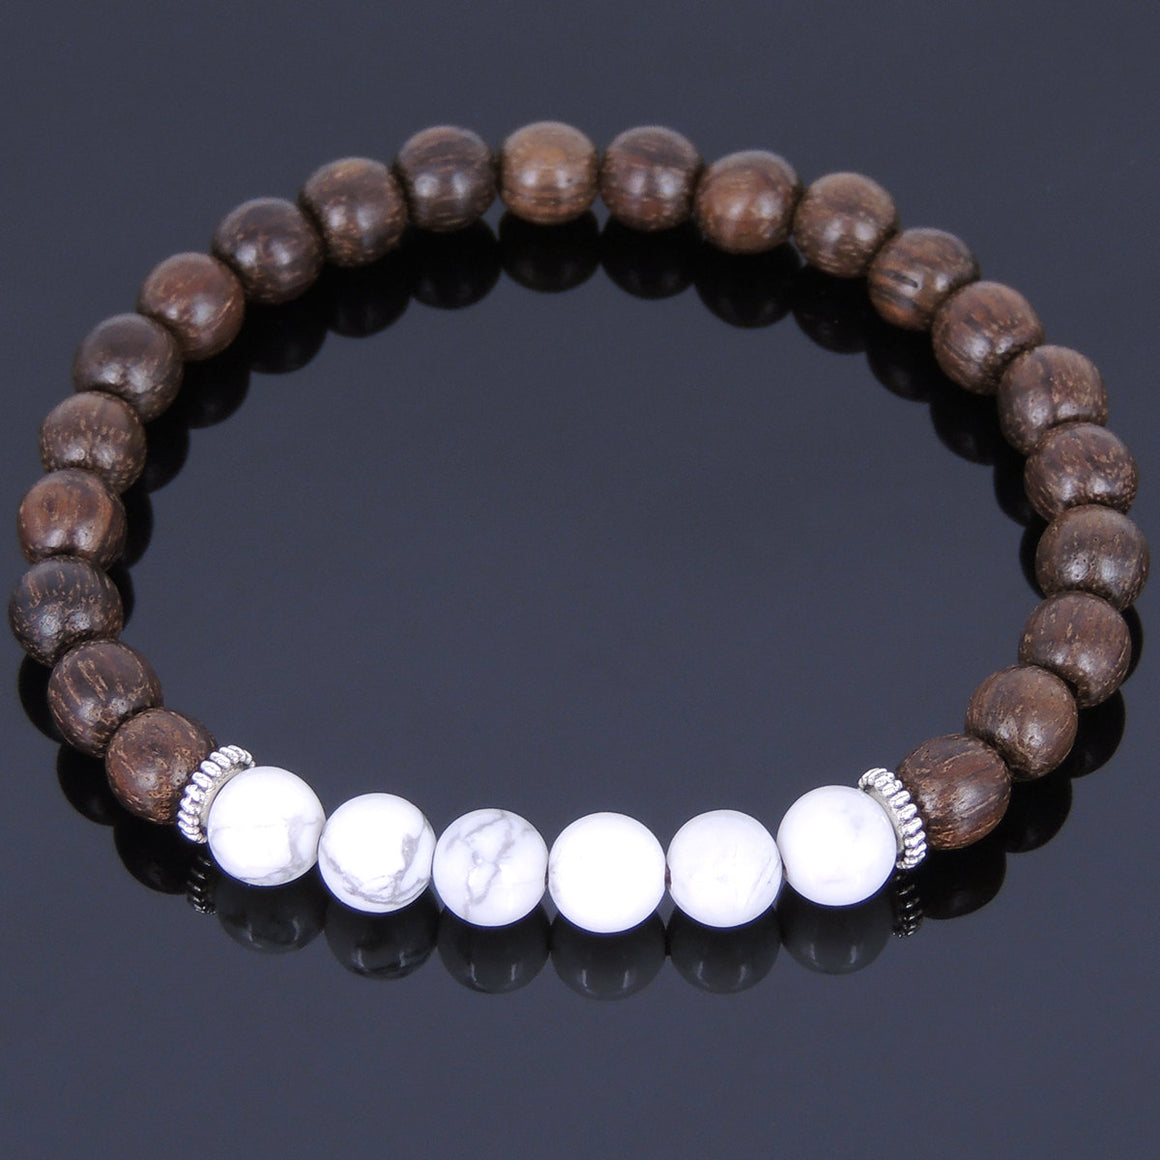 Red Agarwood & White Howlite Healing Gemstone Bracelet with Tibetan Silver Spacers - Handmade by Gem & Silver AWB017